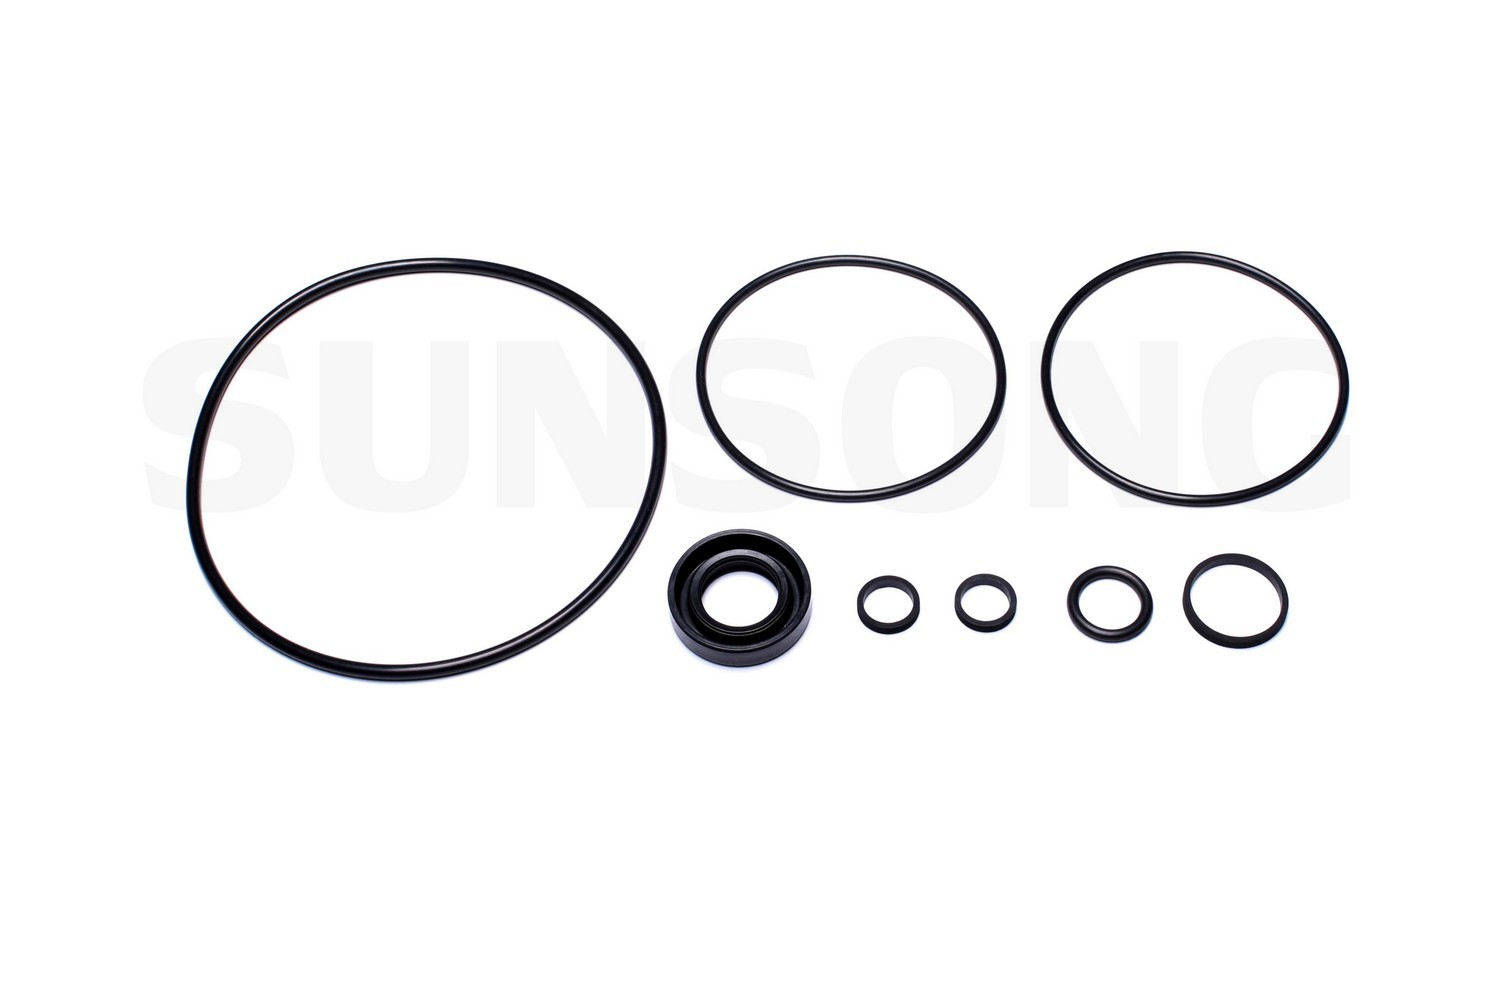 ACDelco 36-367840 Professional Power Steering Cylinder Line Hose Assembly 36-367840-ACD